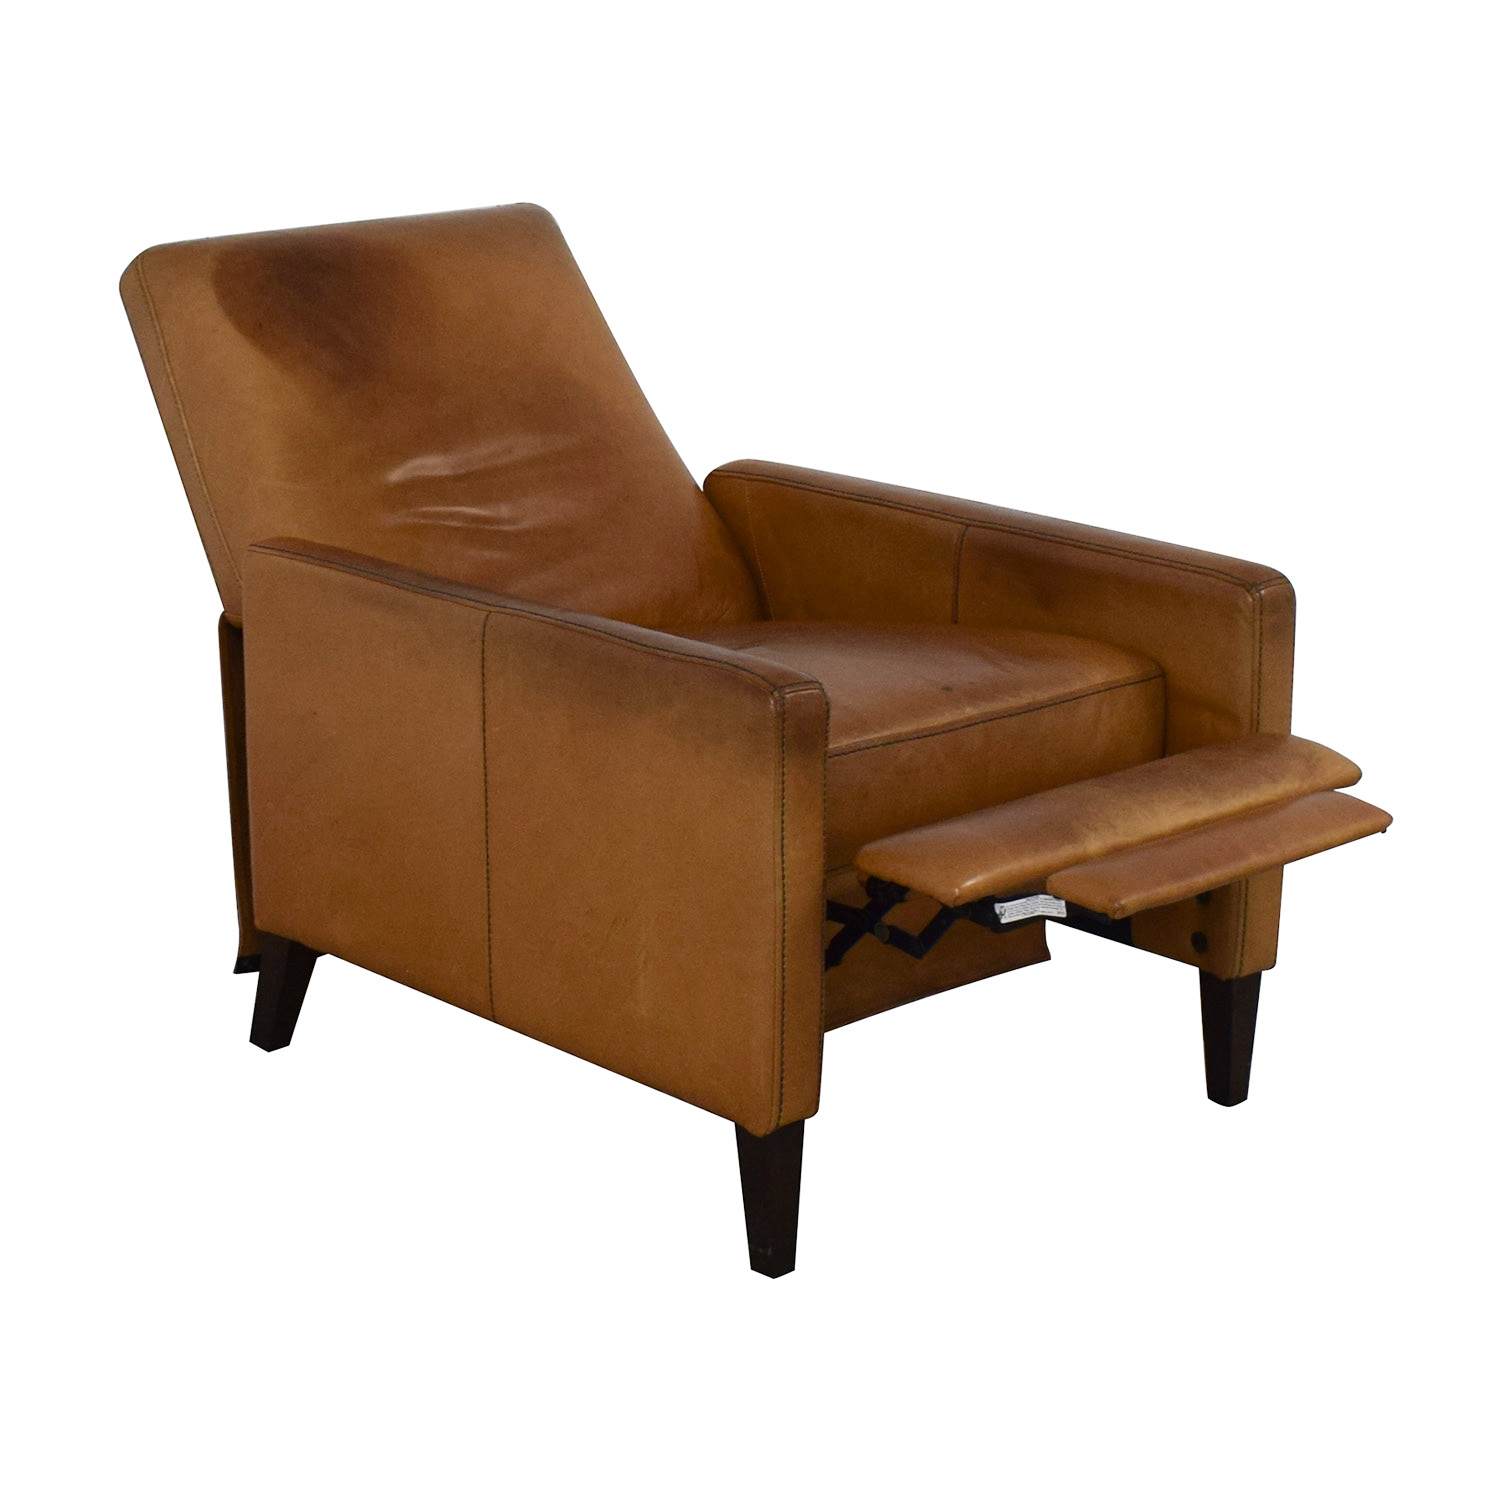 West Elm West Elm Reclining chair for sale